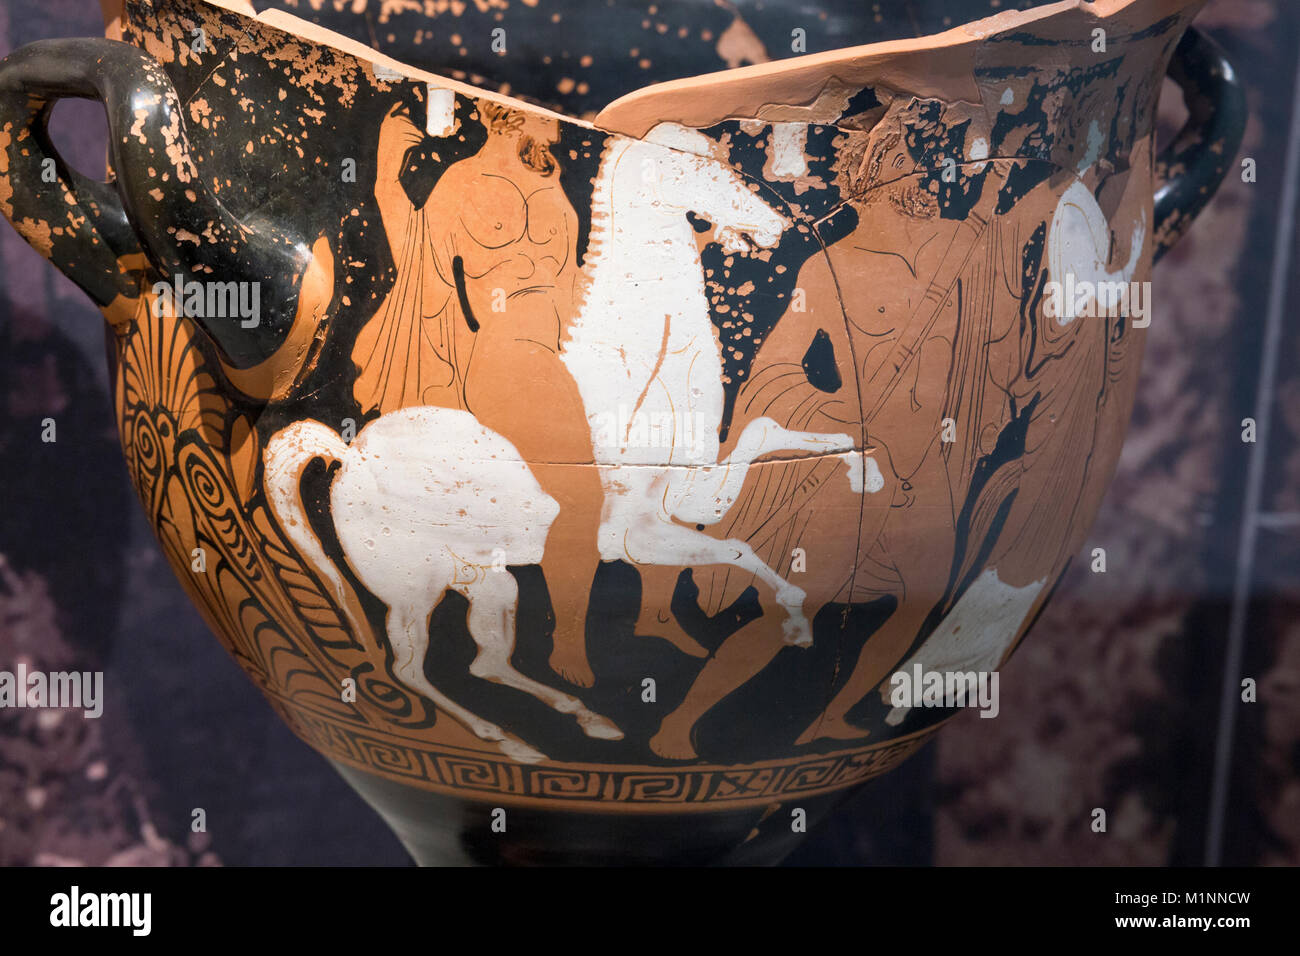 Jaen, Spain - December 29th, 2017: Ancient greek krater found at Piquia Burial Chamber. Ascent of Herakles to hero. - Stock Image